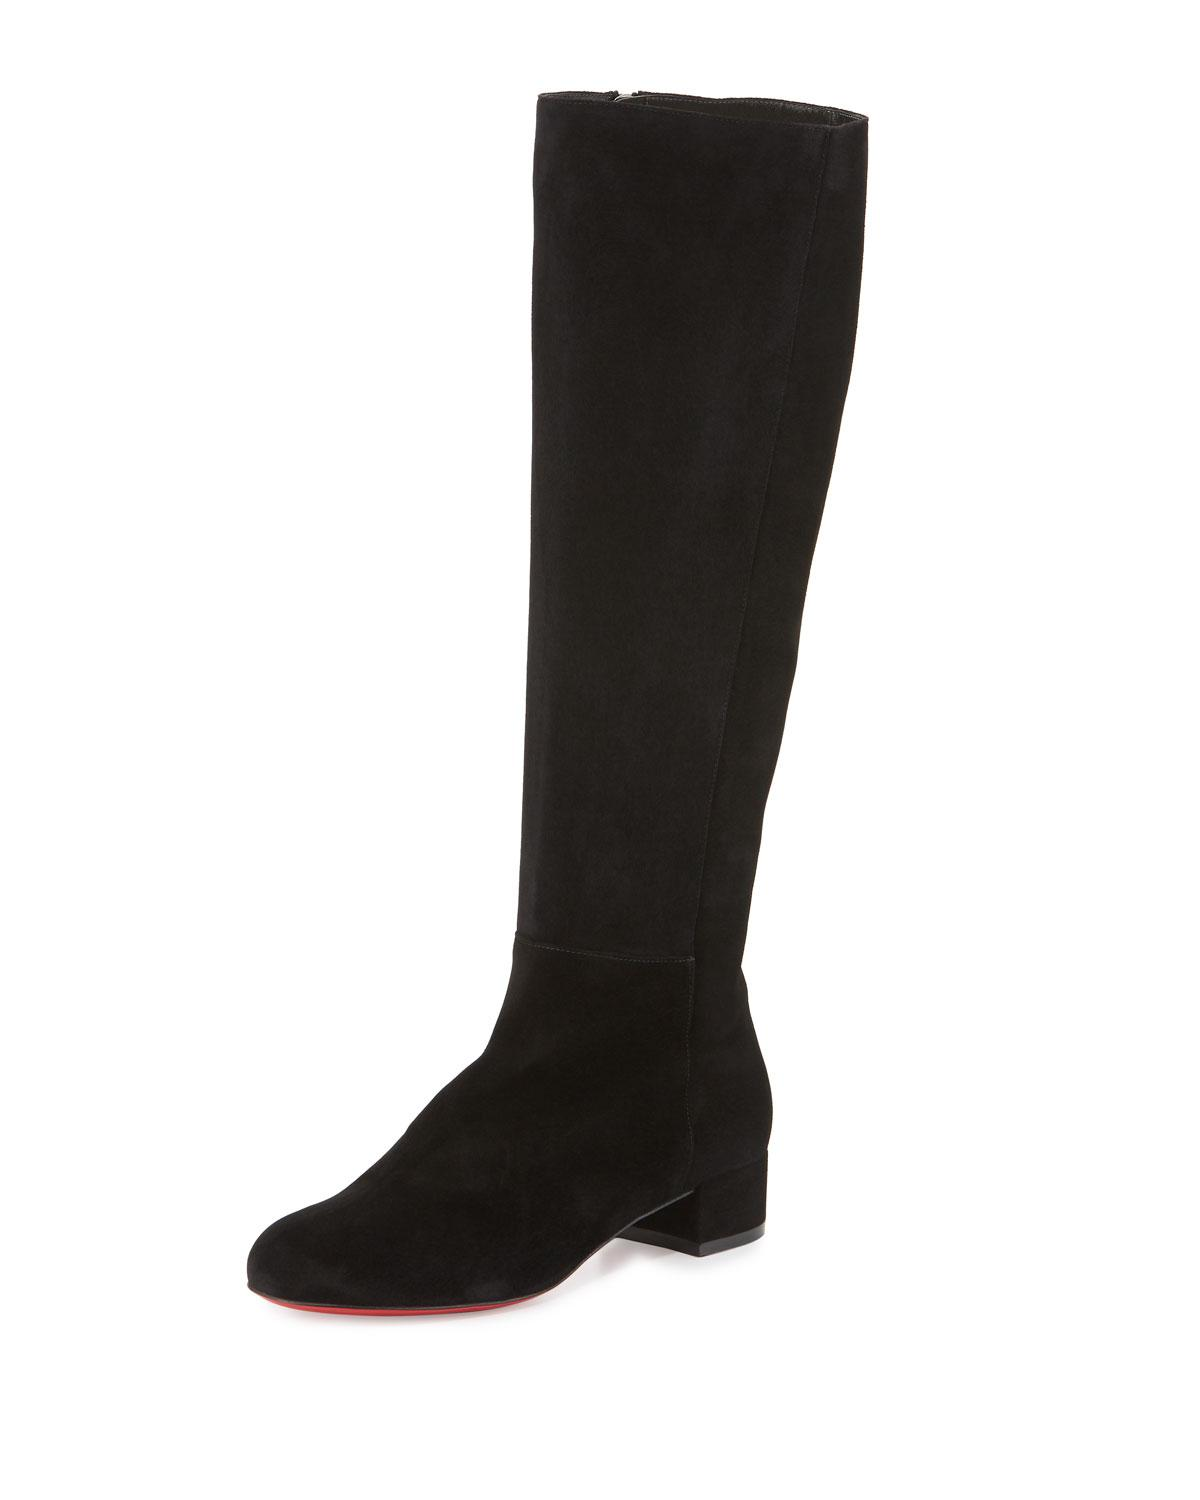 5fdf1512fa39 Christian Louboutin Lili Suede 30mm Red Sole Knee Boot in Black - Lyst